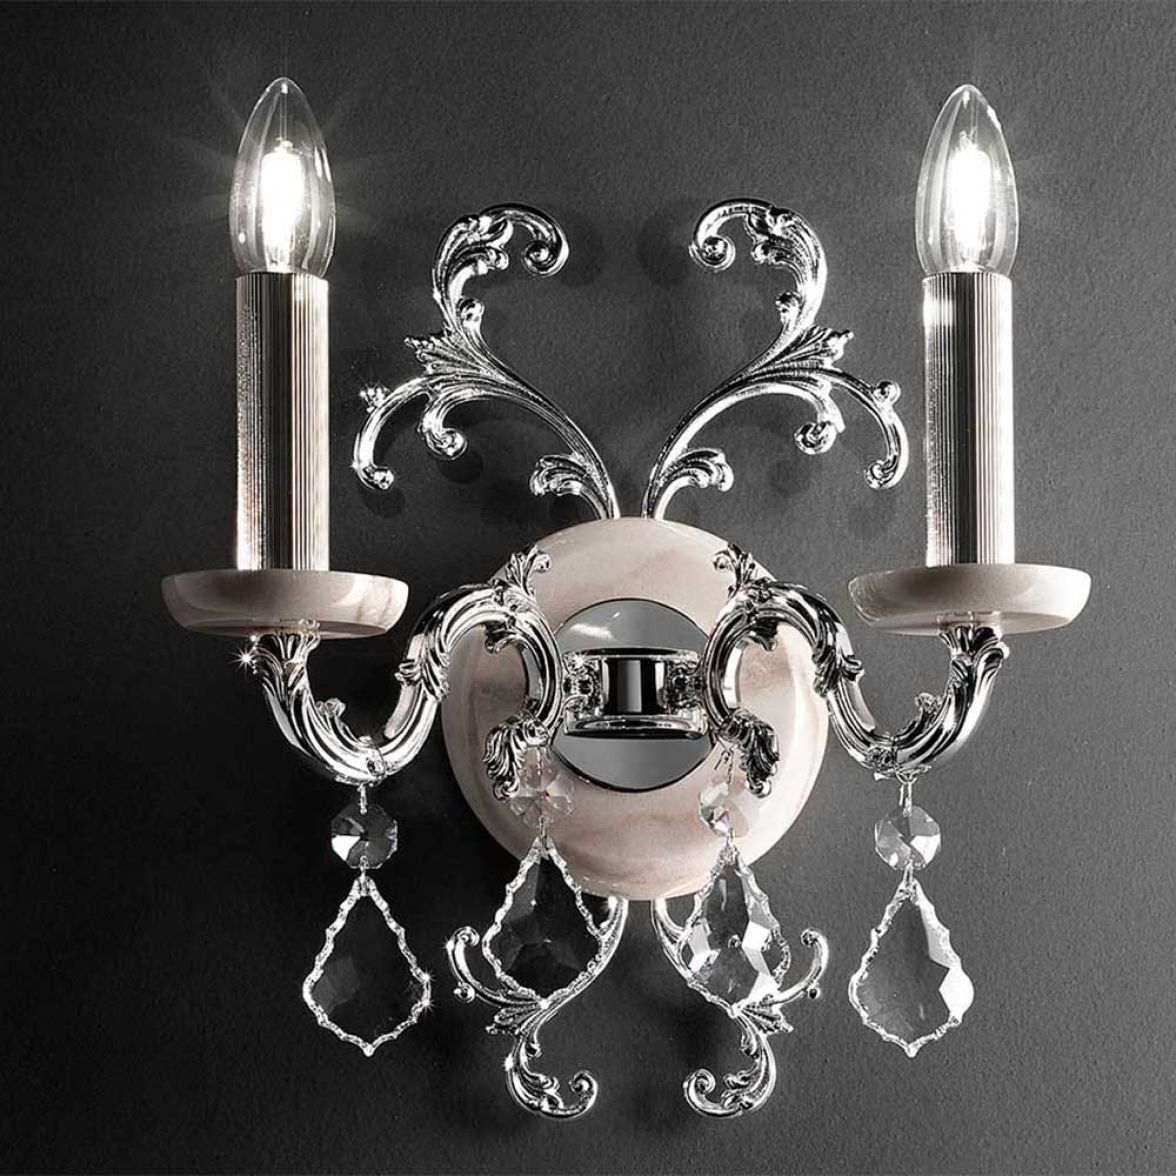 Eternity Guatemala sconce